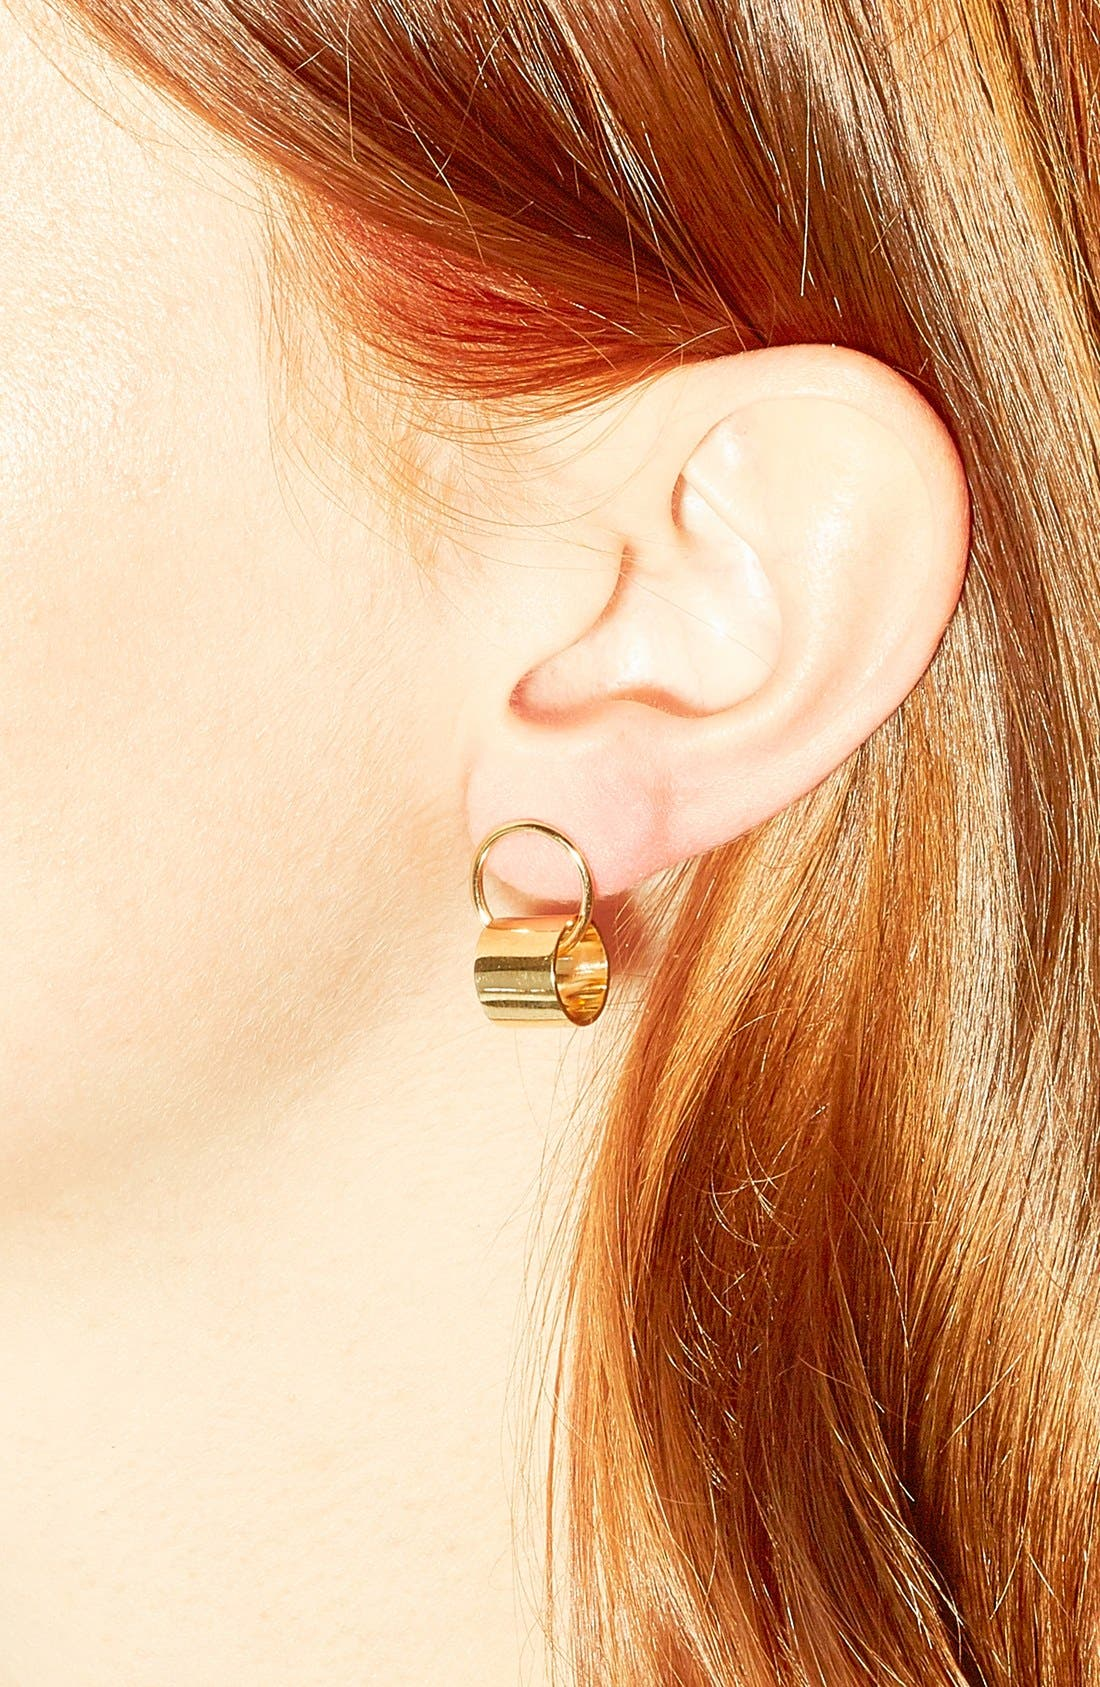 'Young' Drop Earrings,                             Alternate thumbnail 2, color,                             710